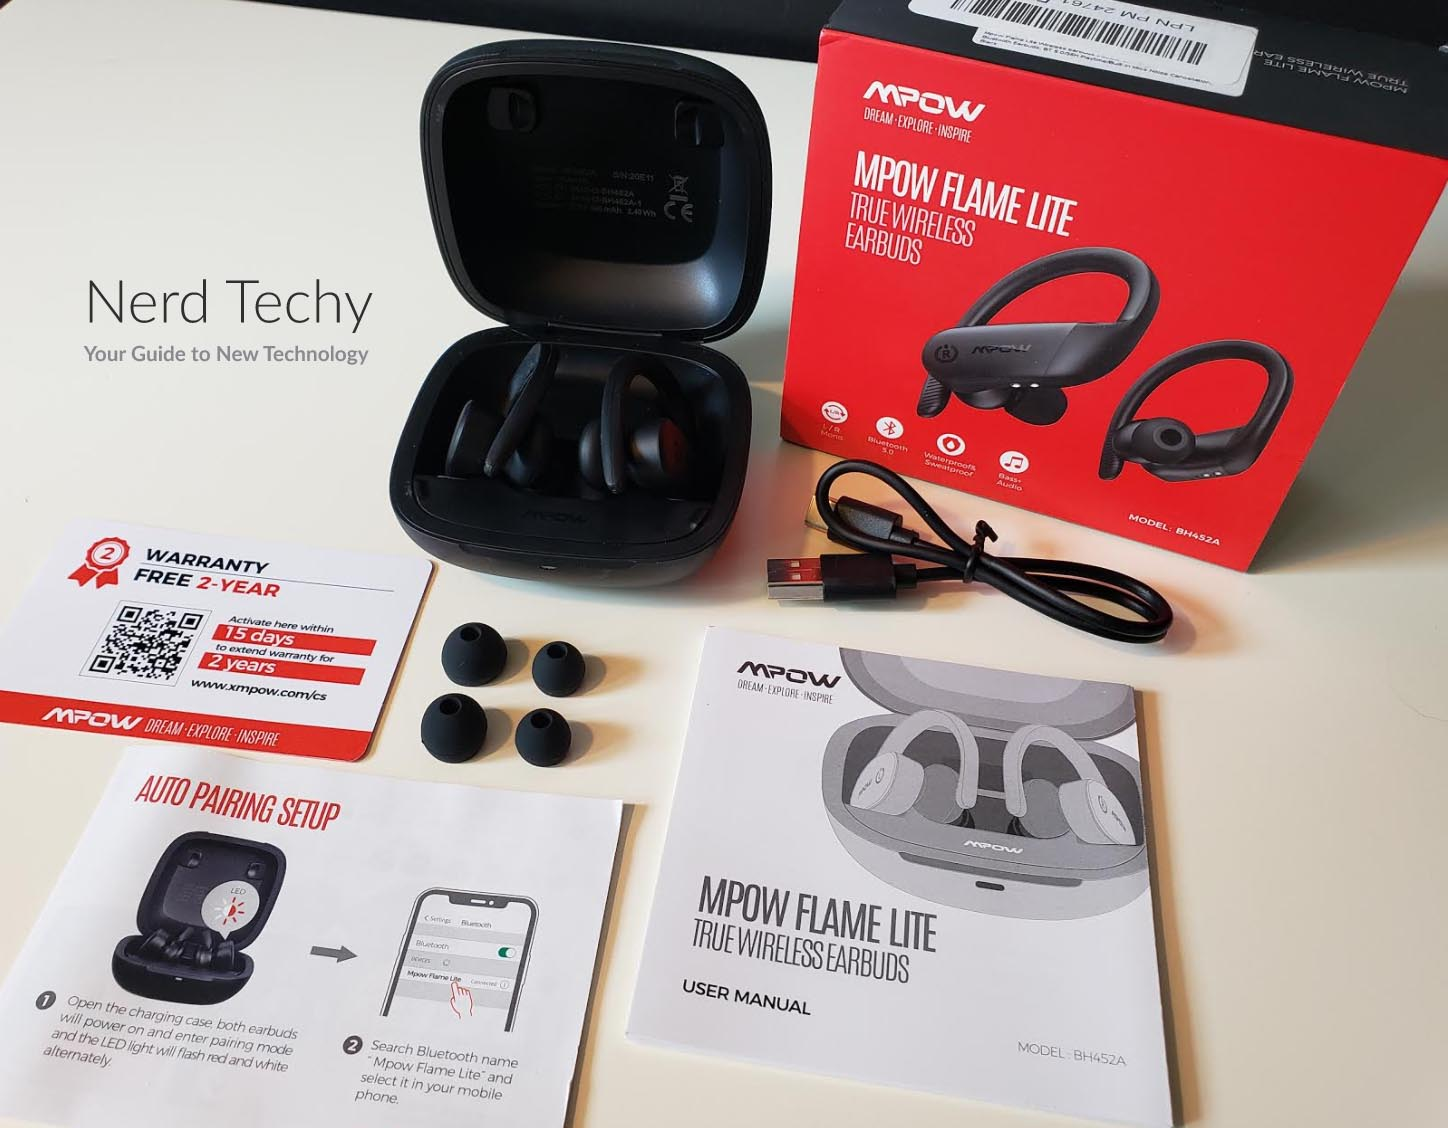 Testing & Review of the Mpow Flame Lite Wireless Earbuds - Nerd Techy